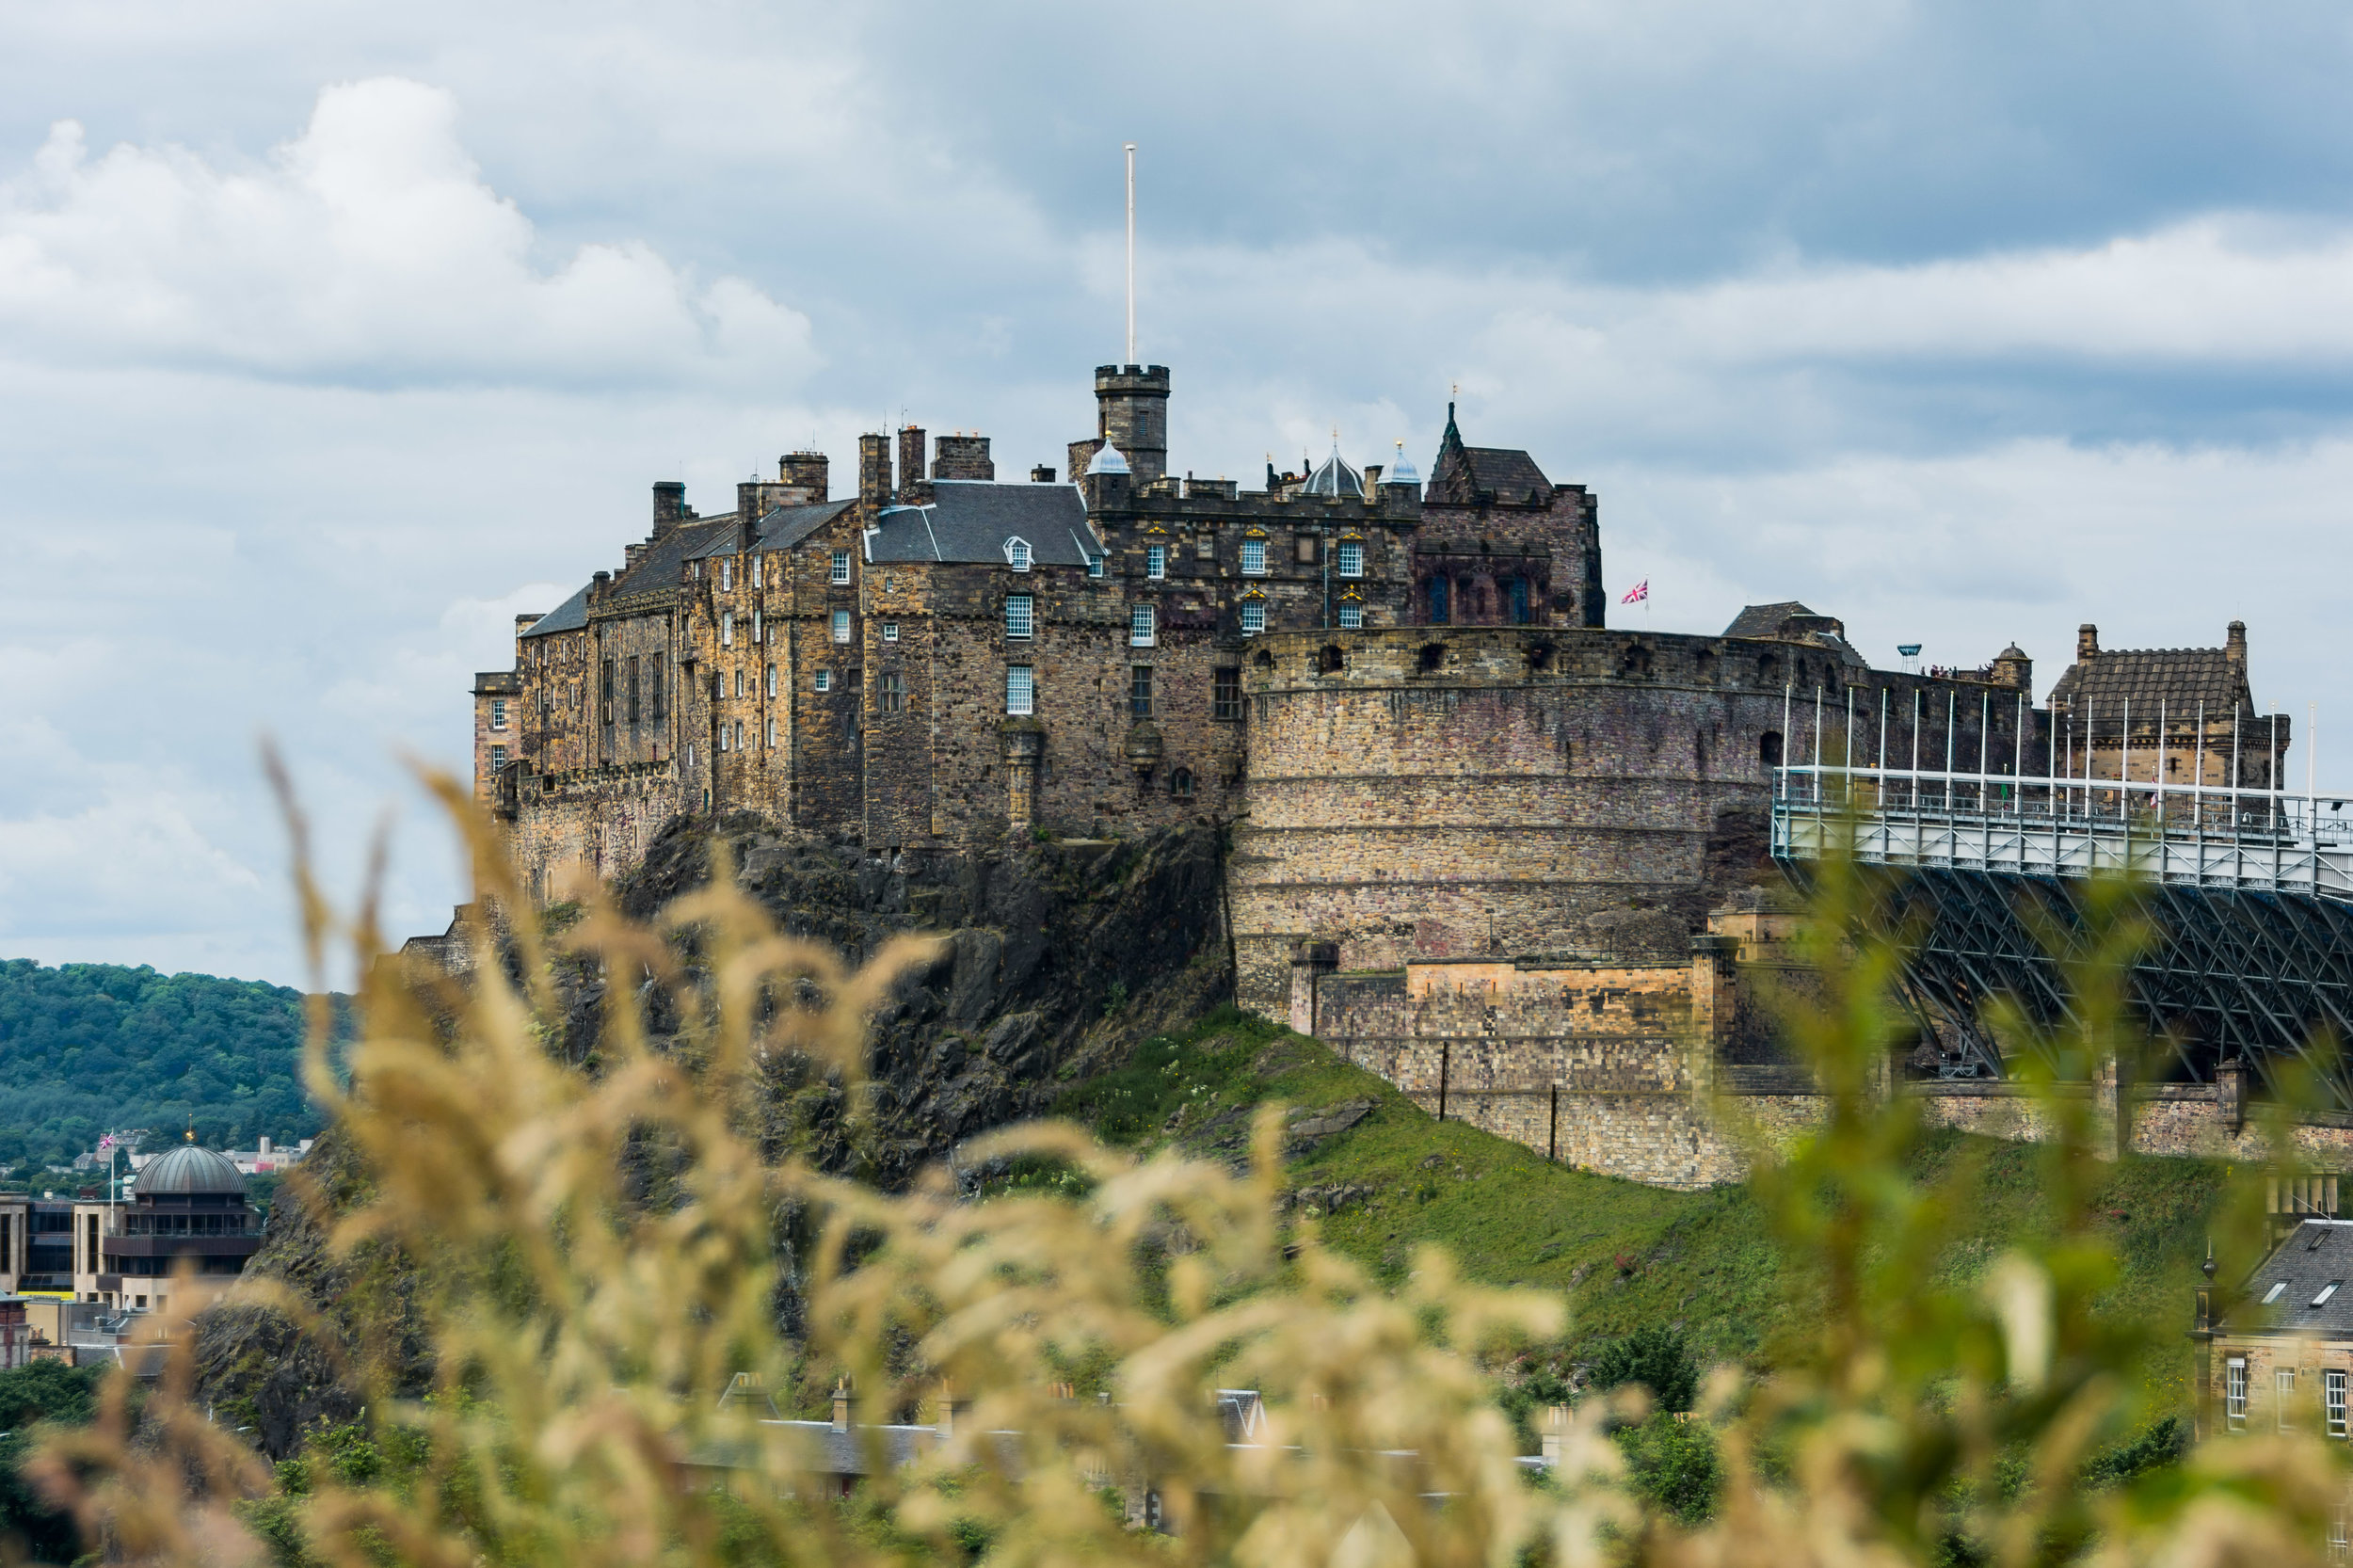 Edinburgh Castle, seen from the National Museum of Scotland